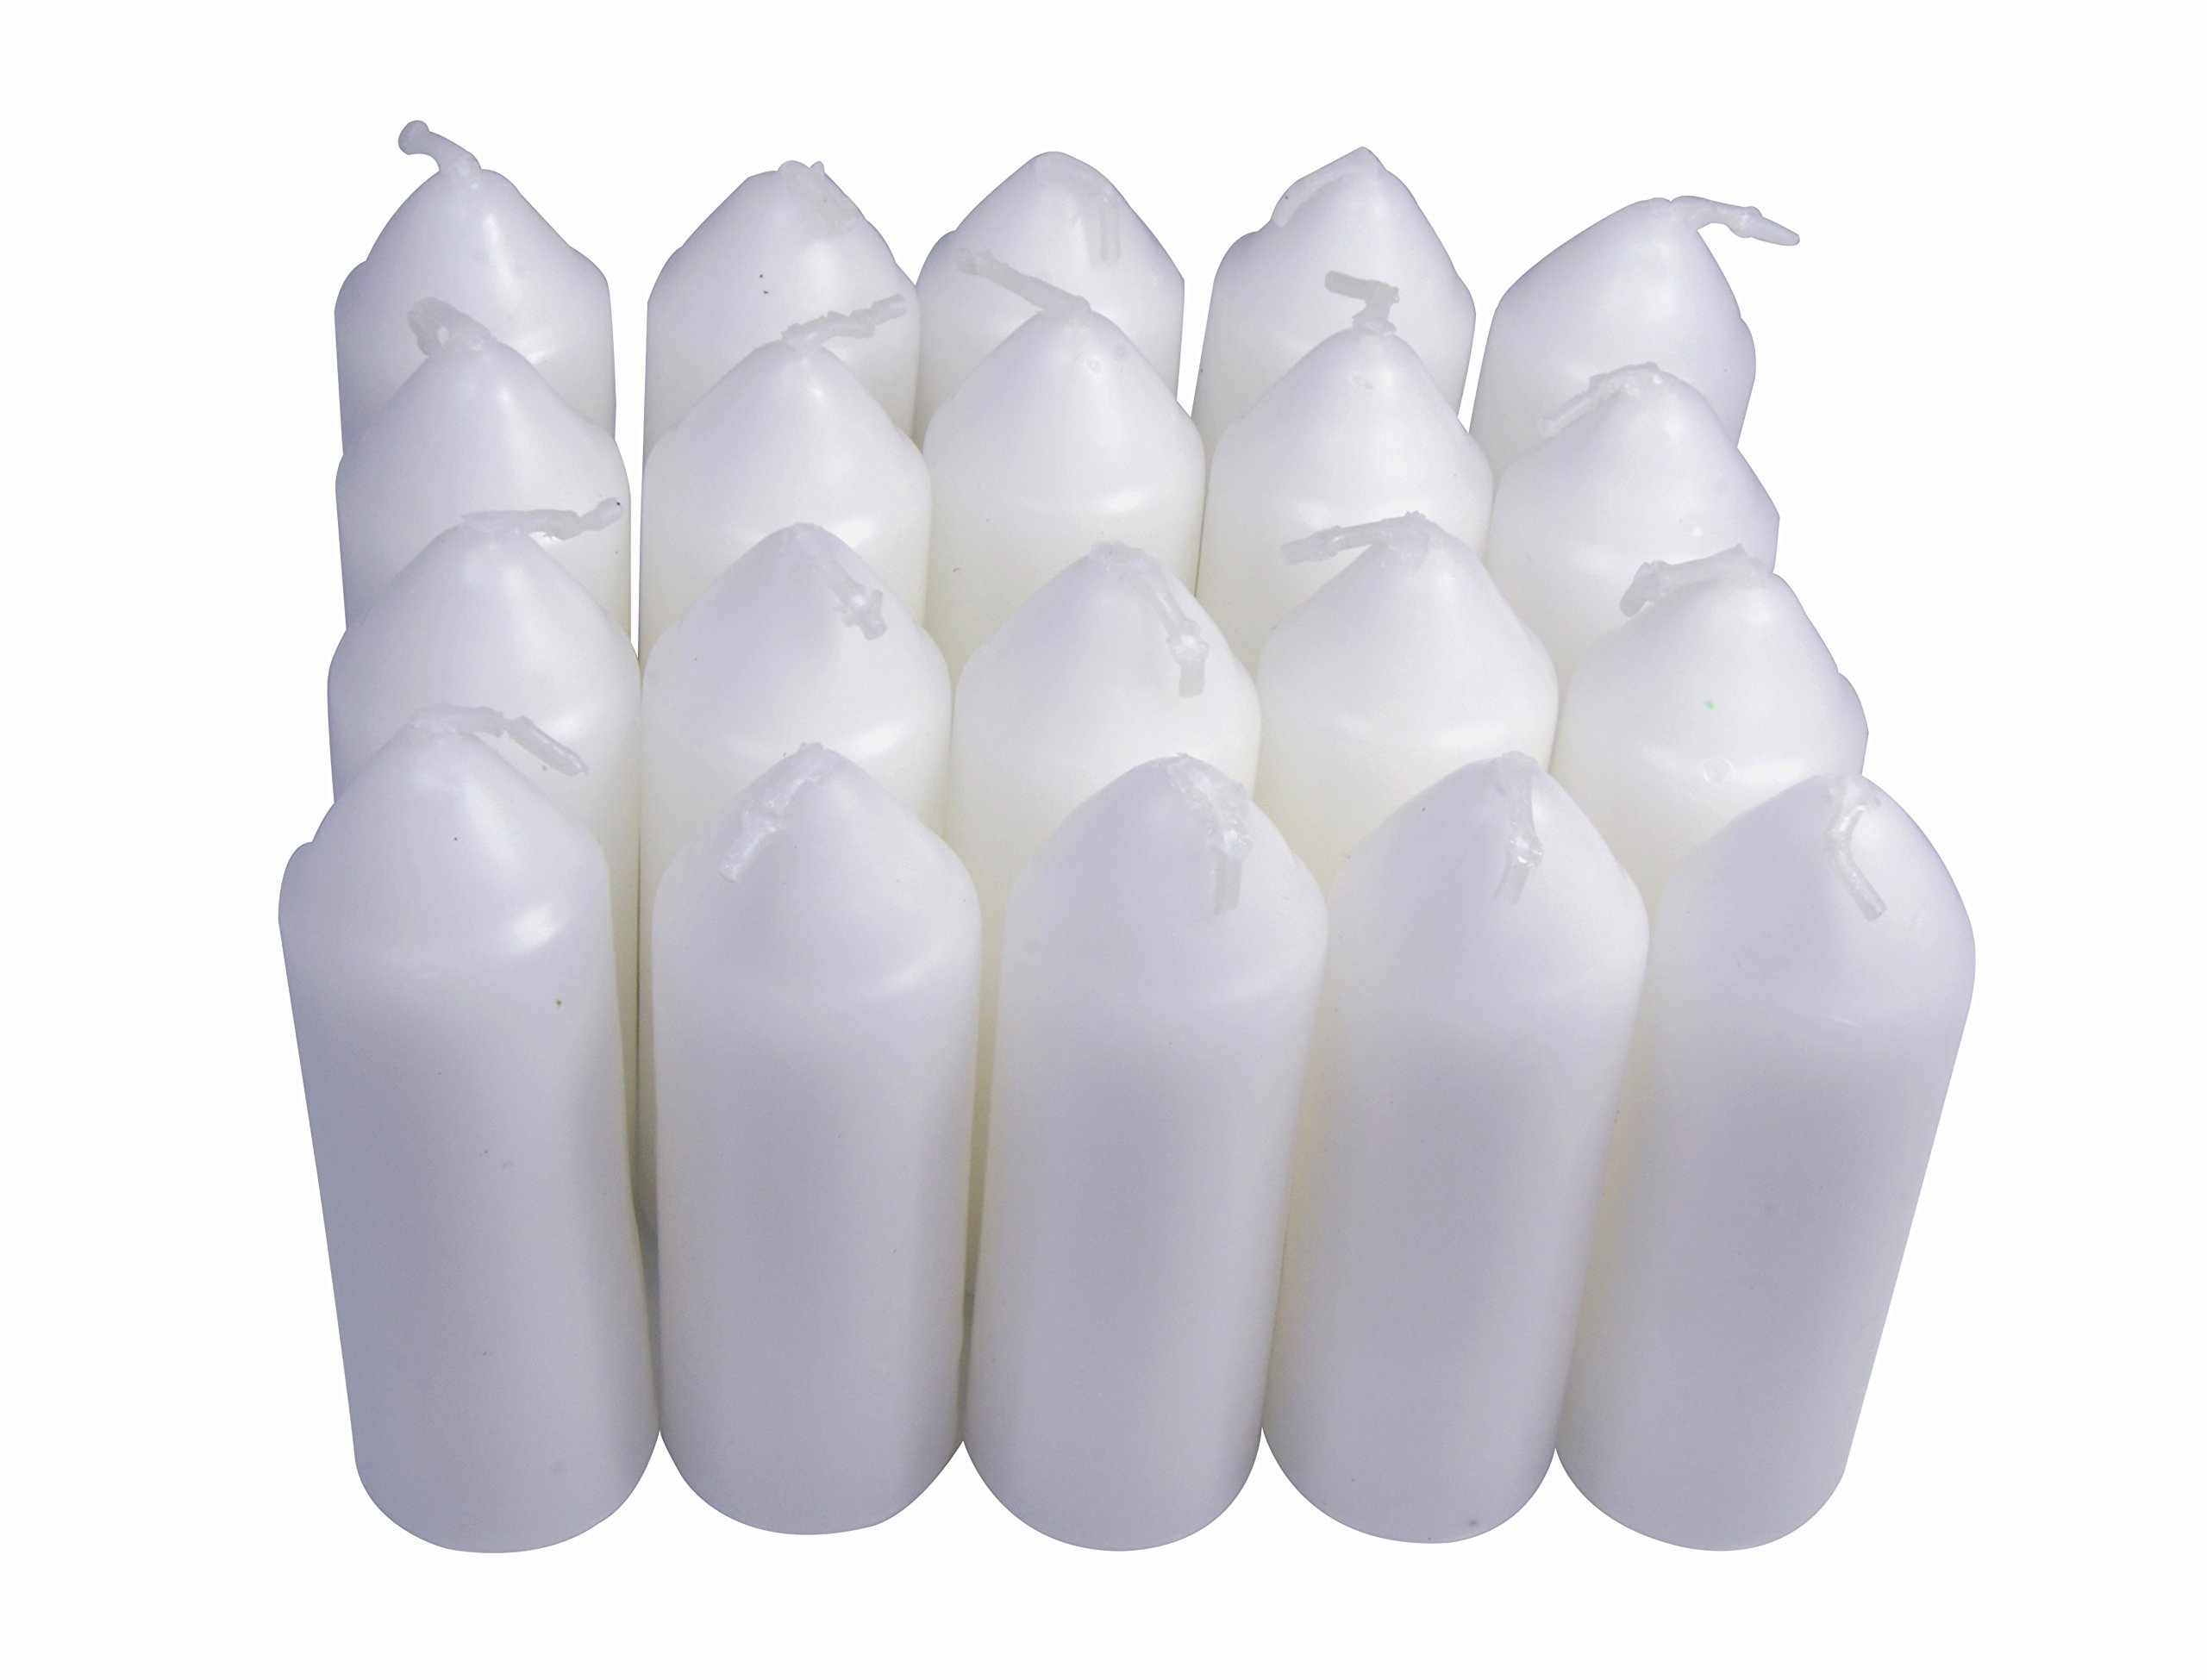 UCO 9-Hour White Candles Candle Lanterns and Emergency Preparedness, 20-Pack by UCO